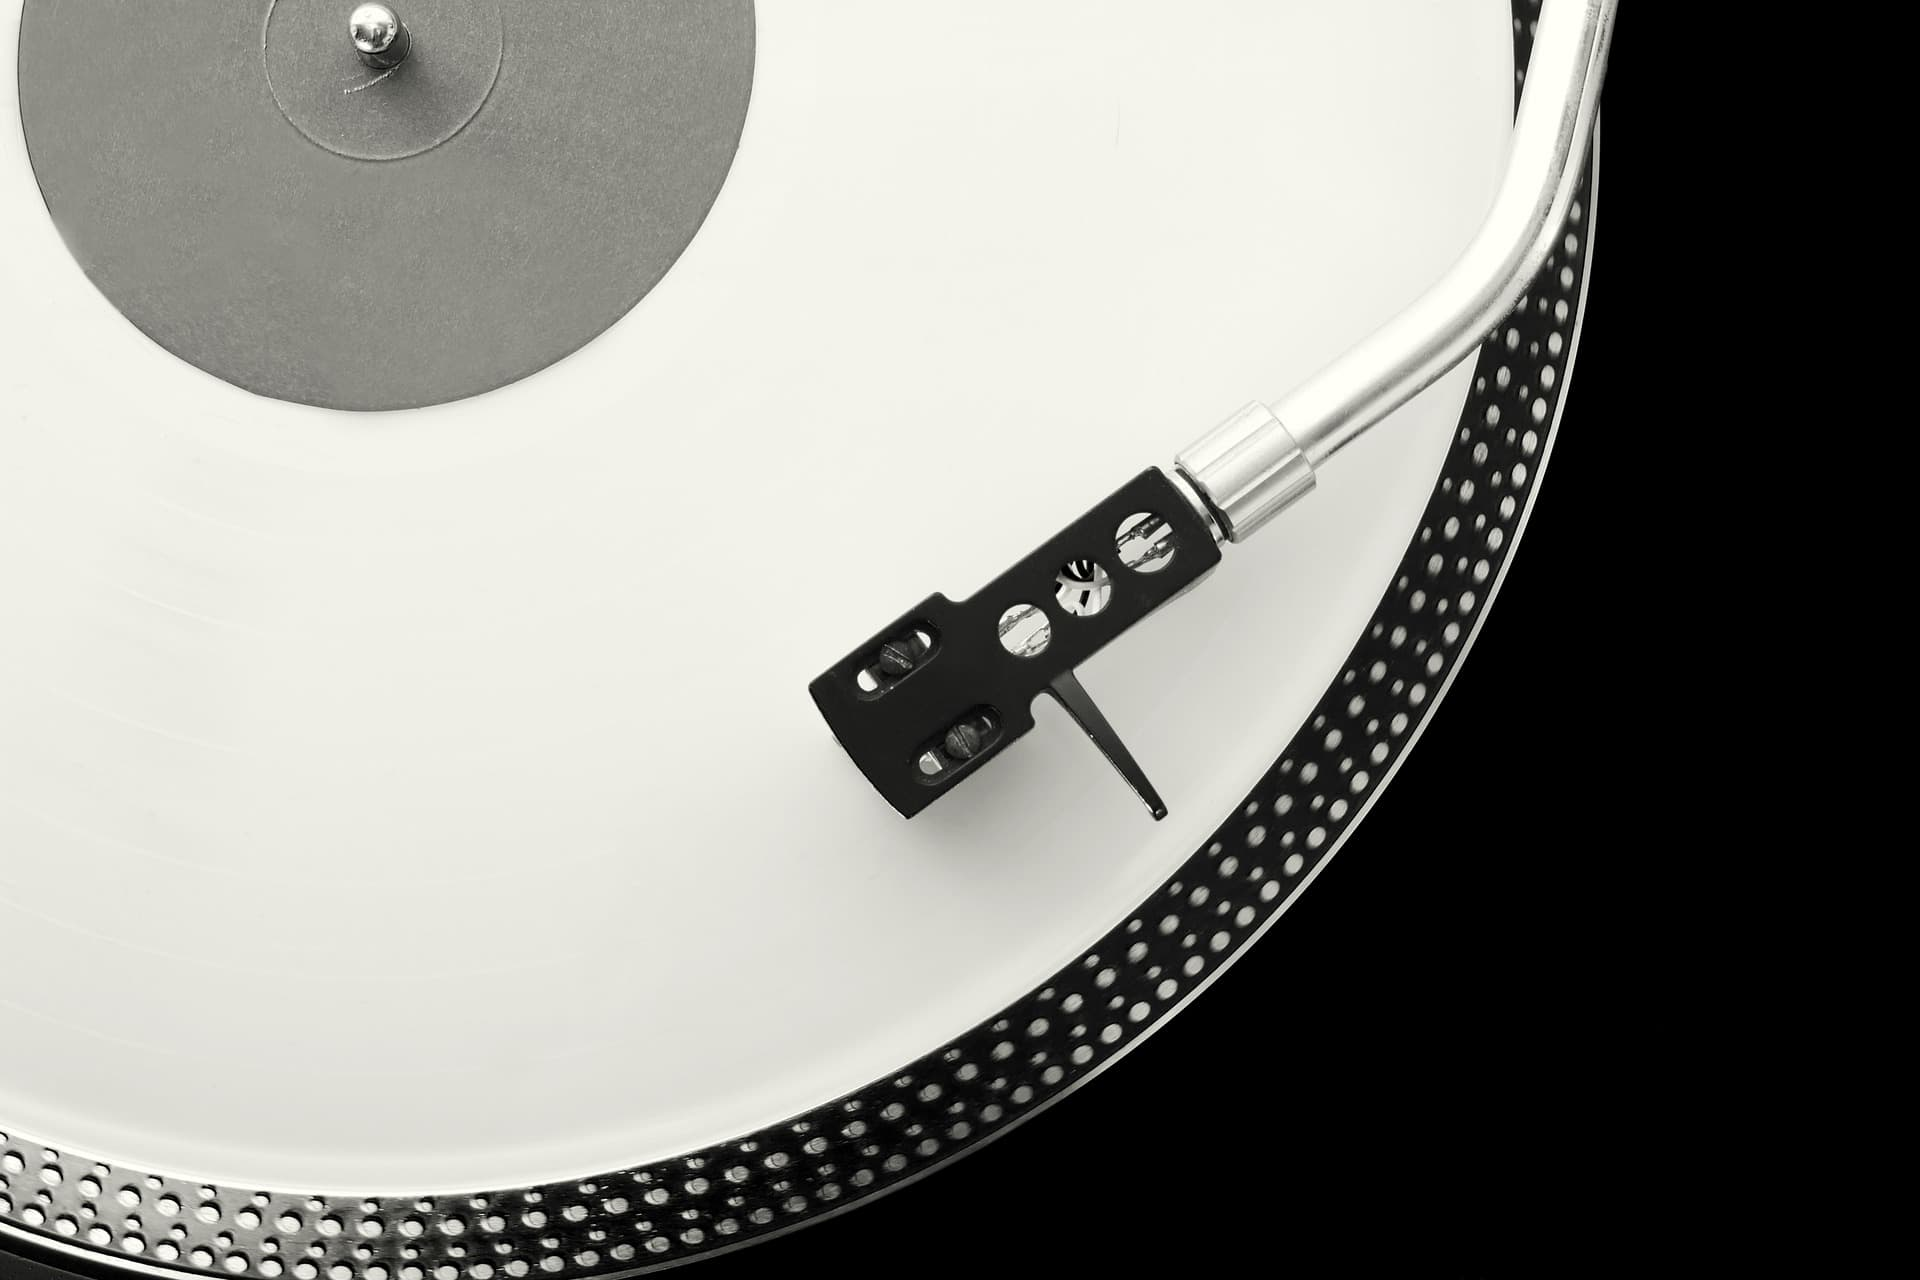 White Record on a Turntable